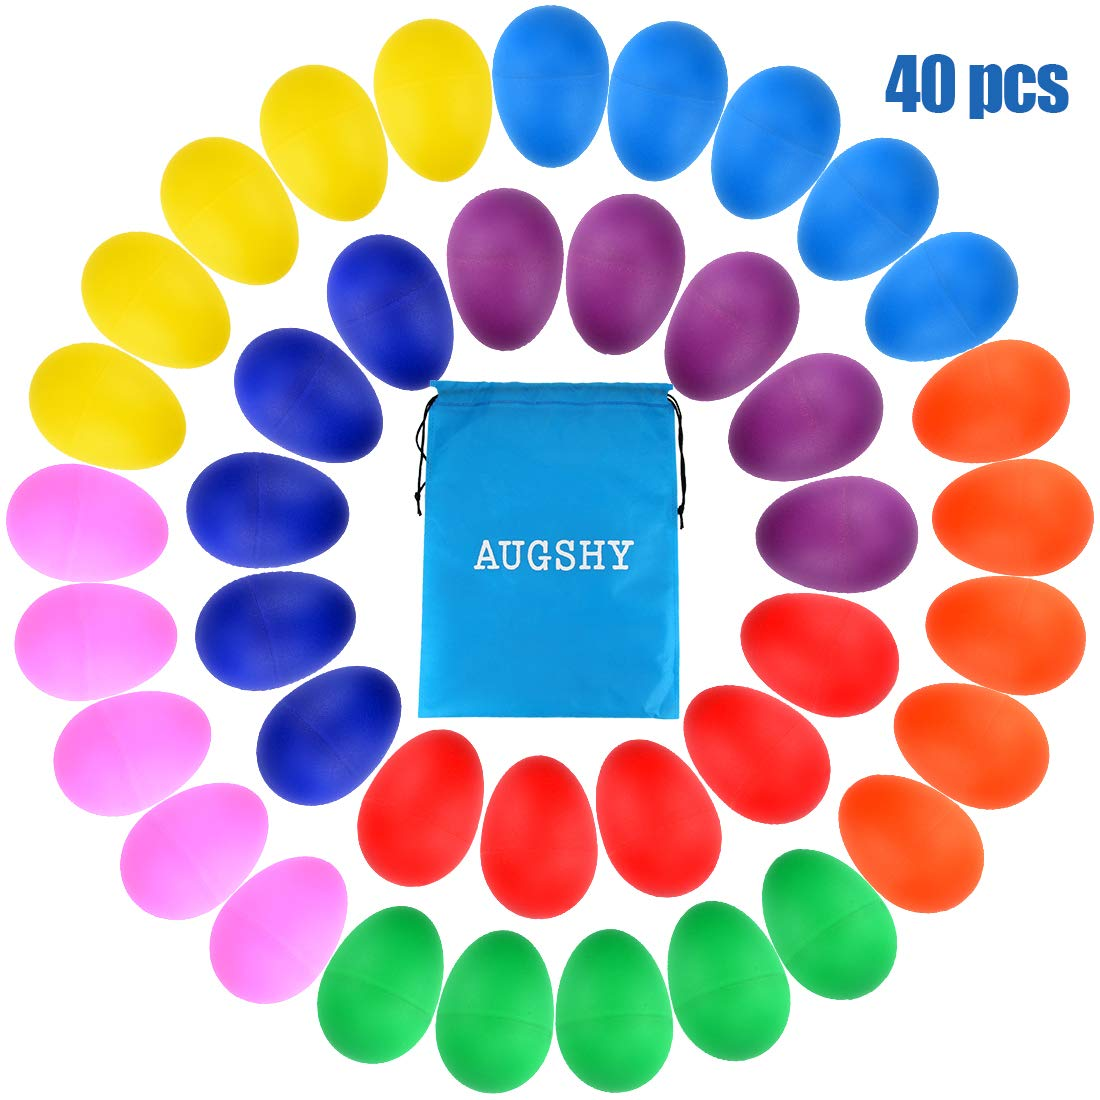 40 Pieces Plastic Egg Shakers Percussion Musical Egg Maracas with a Storage Bag for Toys Music Learning DIY Painting(8 Different Colors) by Augshy